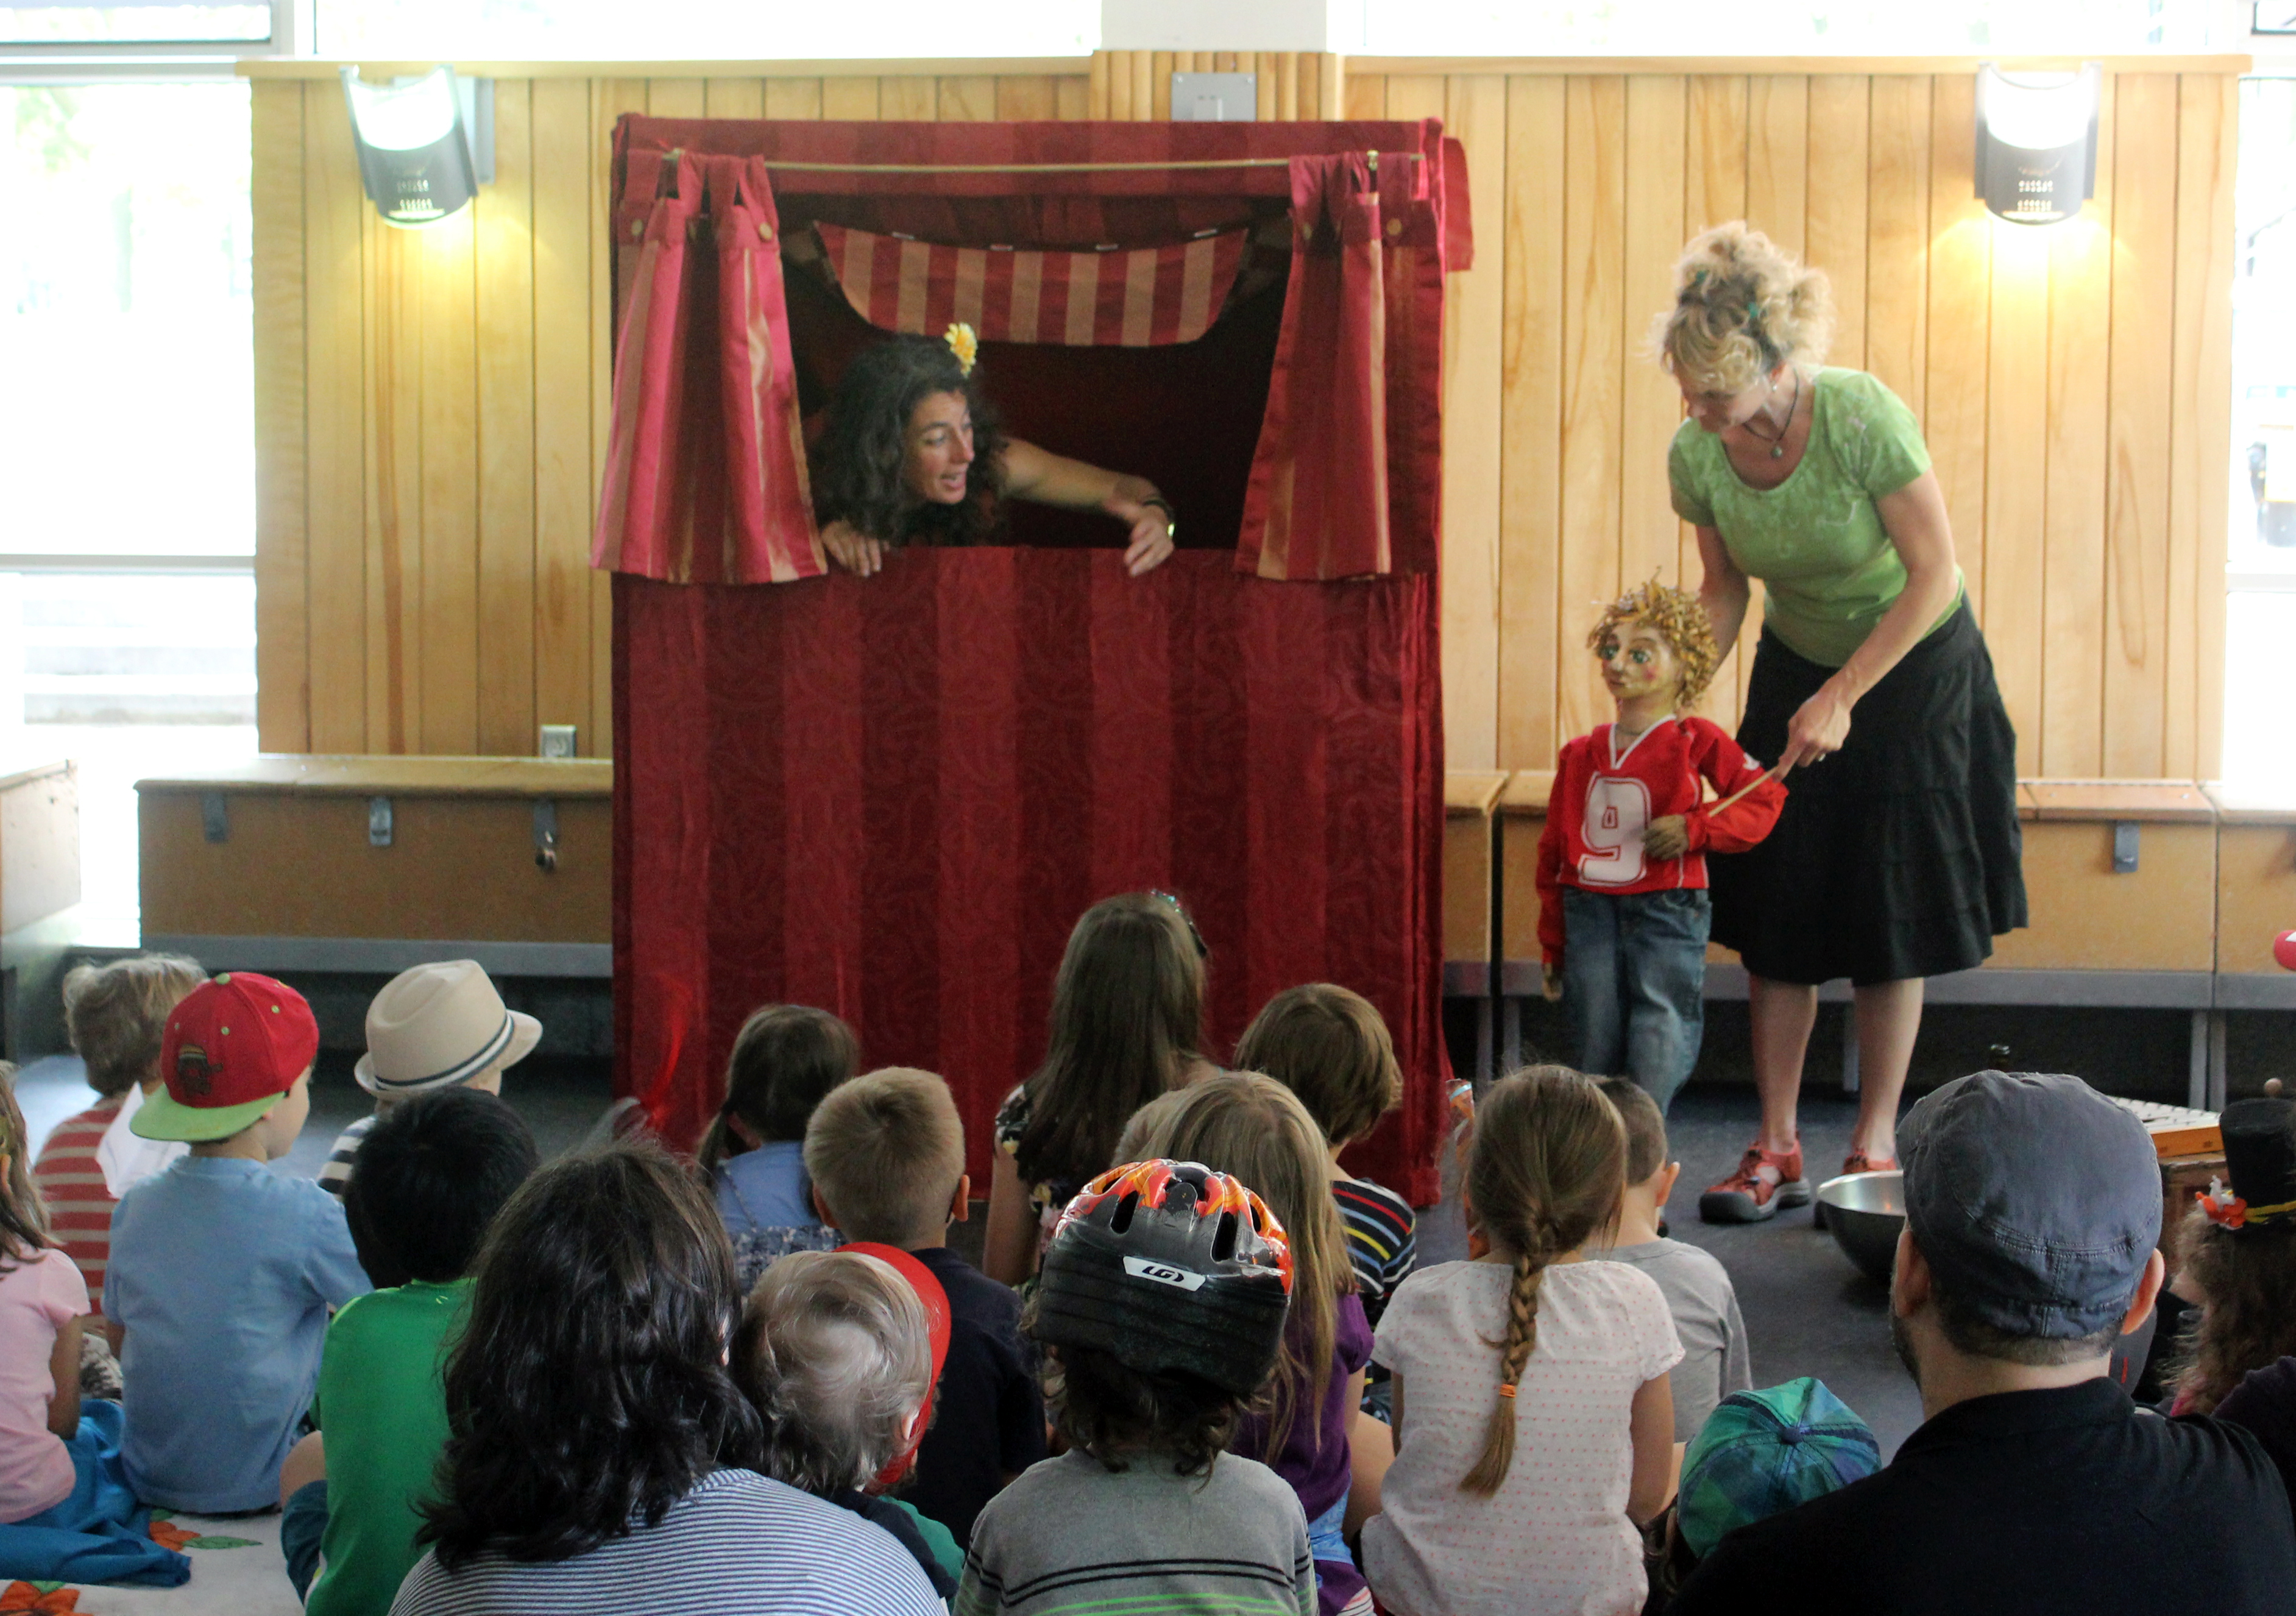 Casteliers sur l'herbe: Puppets for the Whole Family